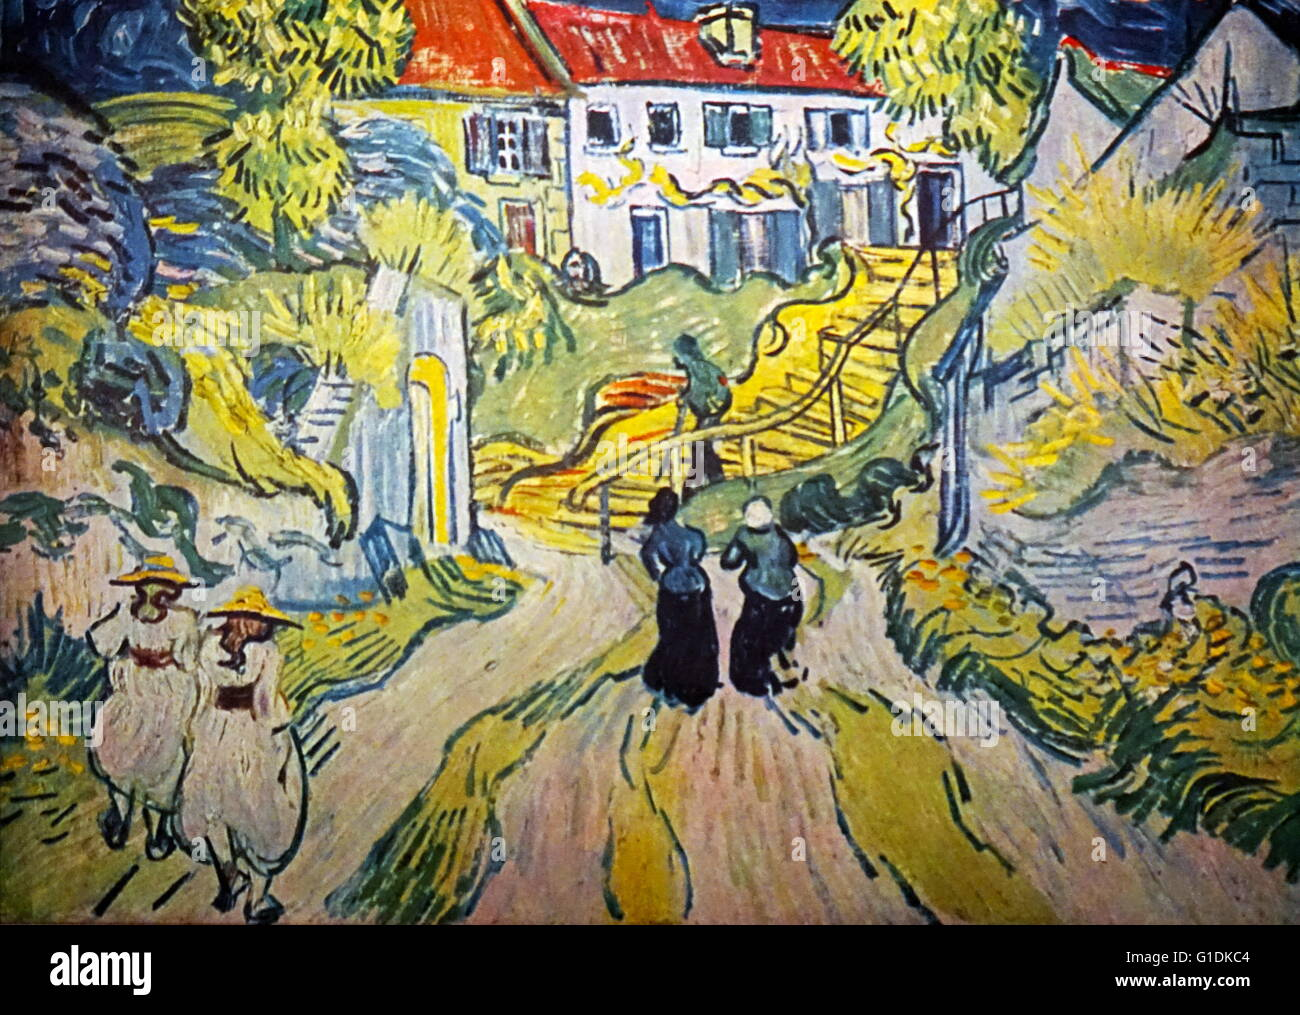 Vincent van Gogh (1853-1890) post-Impressionist painter. Stairway at Auvers, July 1890, oil on canvas - Stock Image